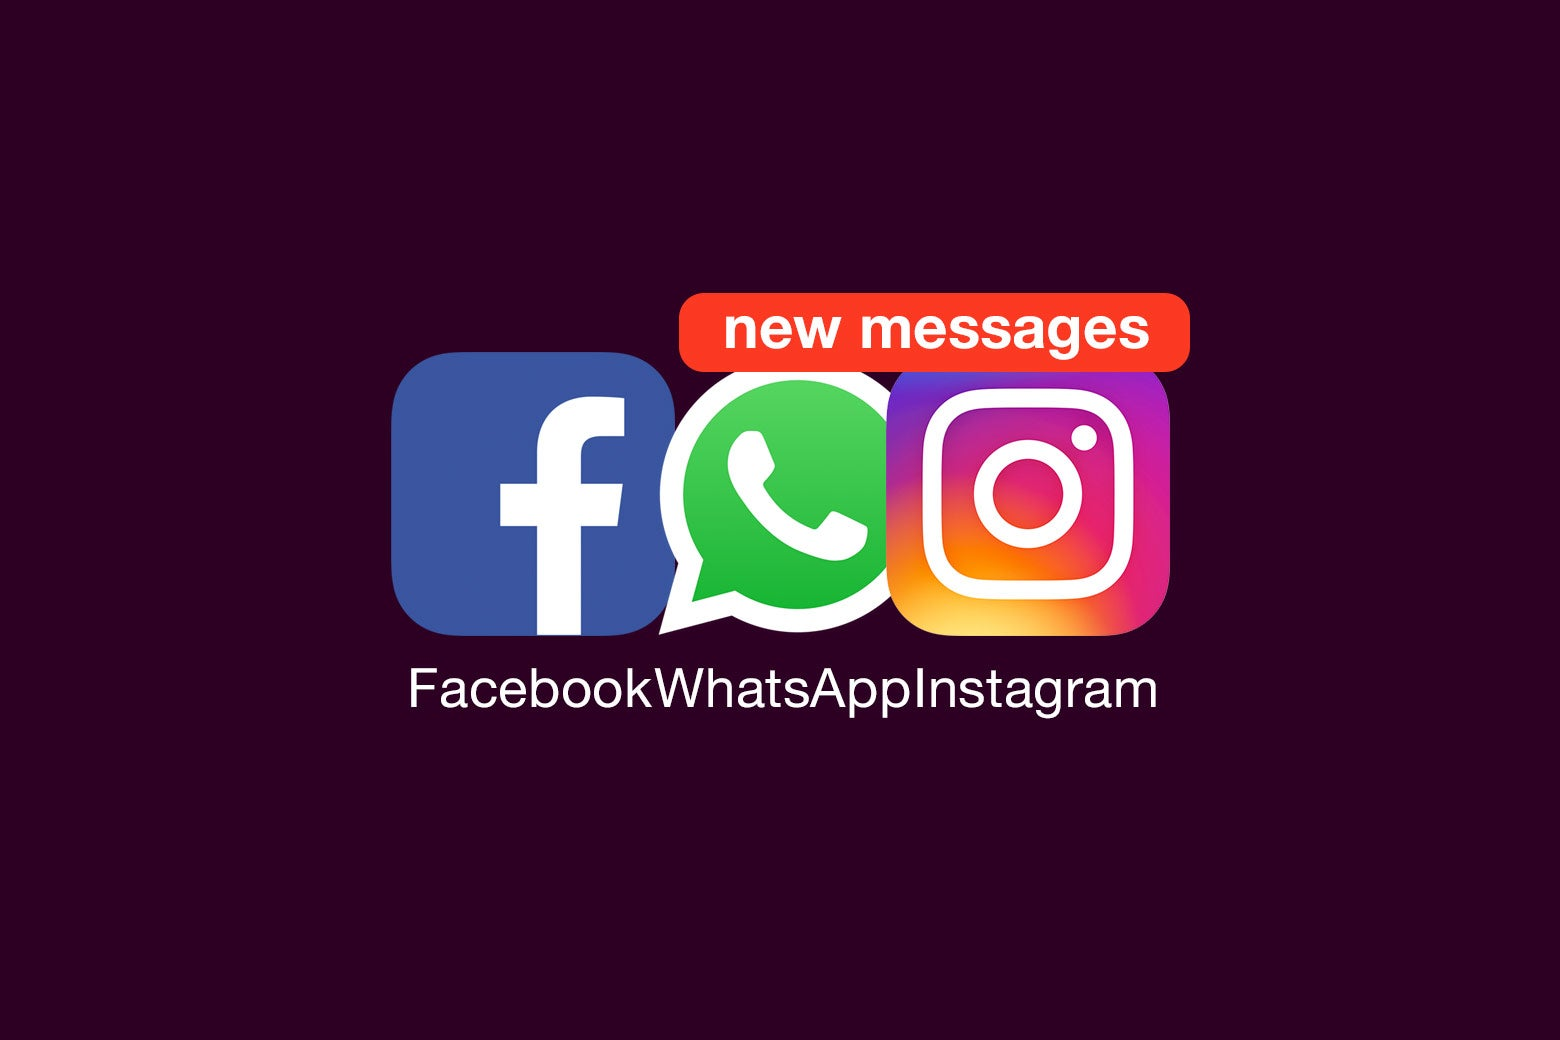 """Icons for Facebook, WhatsApp, and Instagram with a red text bubble that says """"New messages."""""""